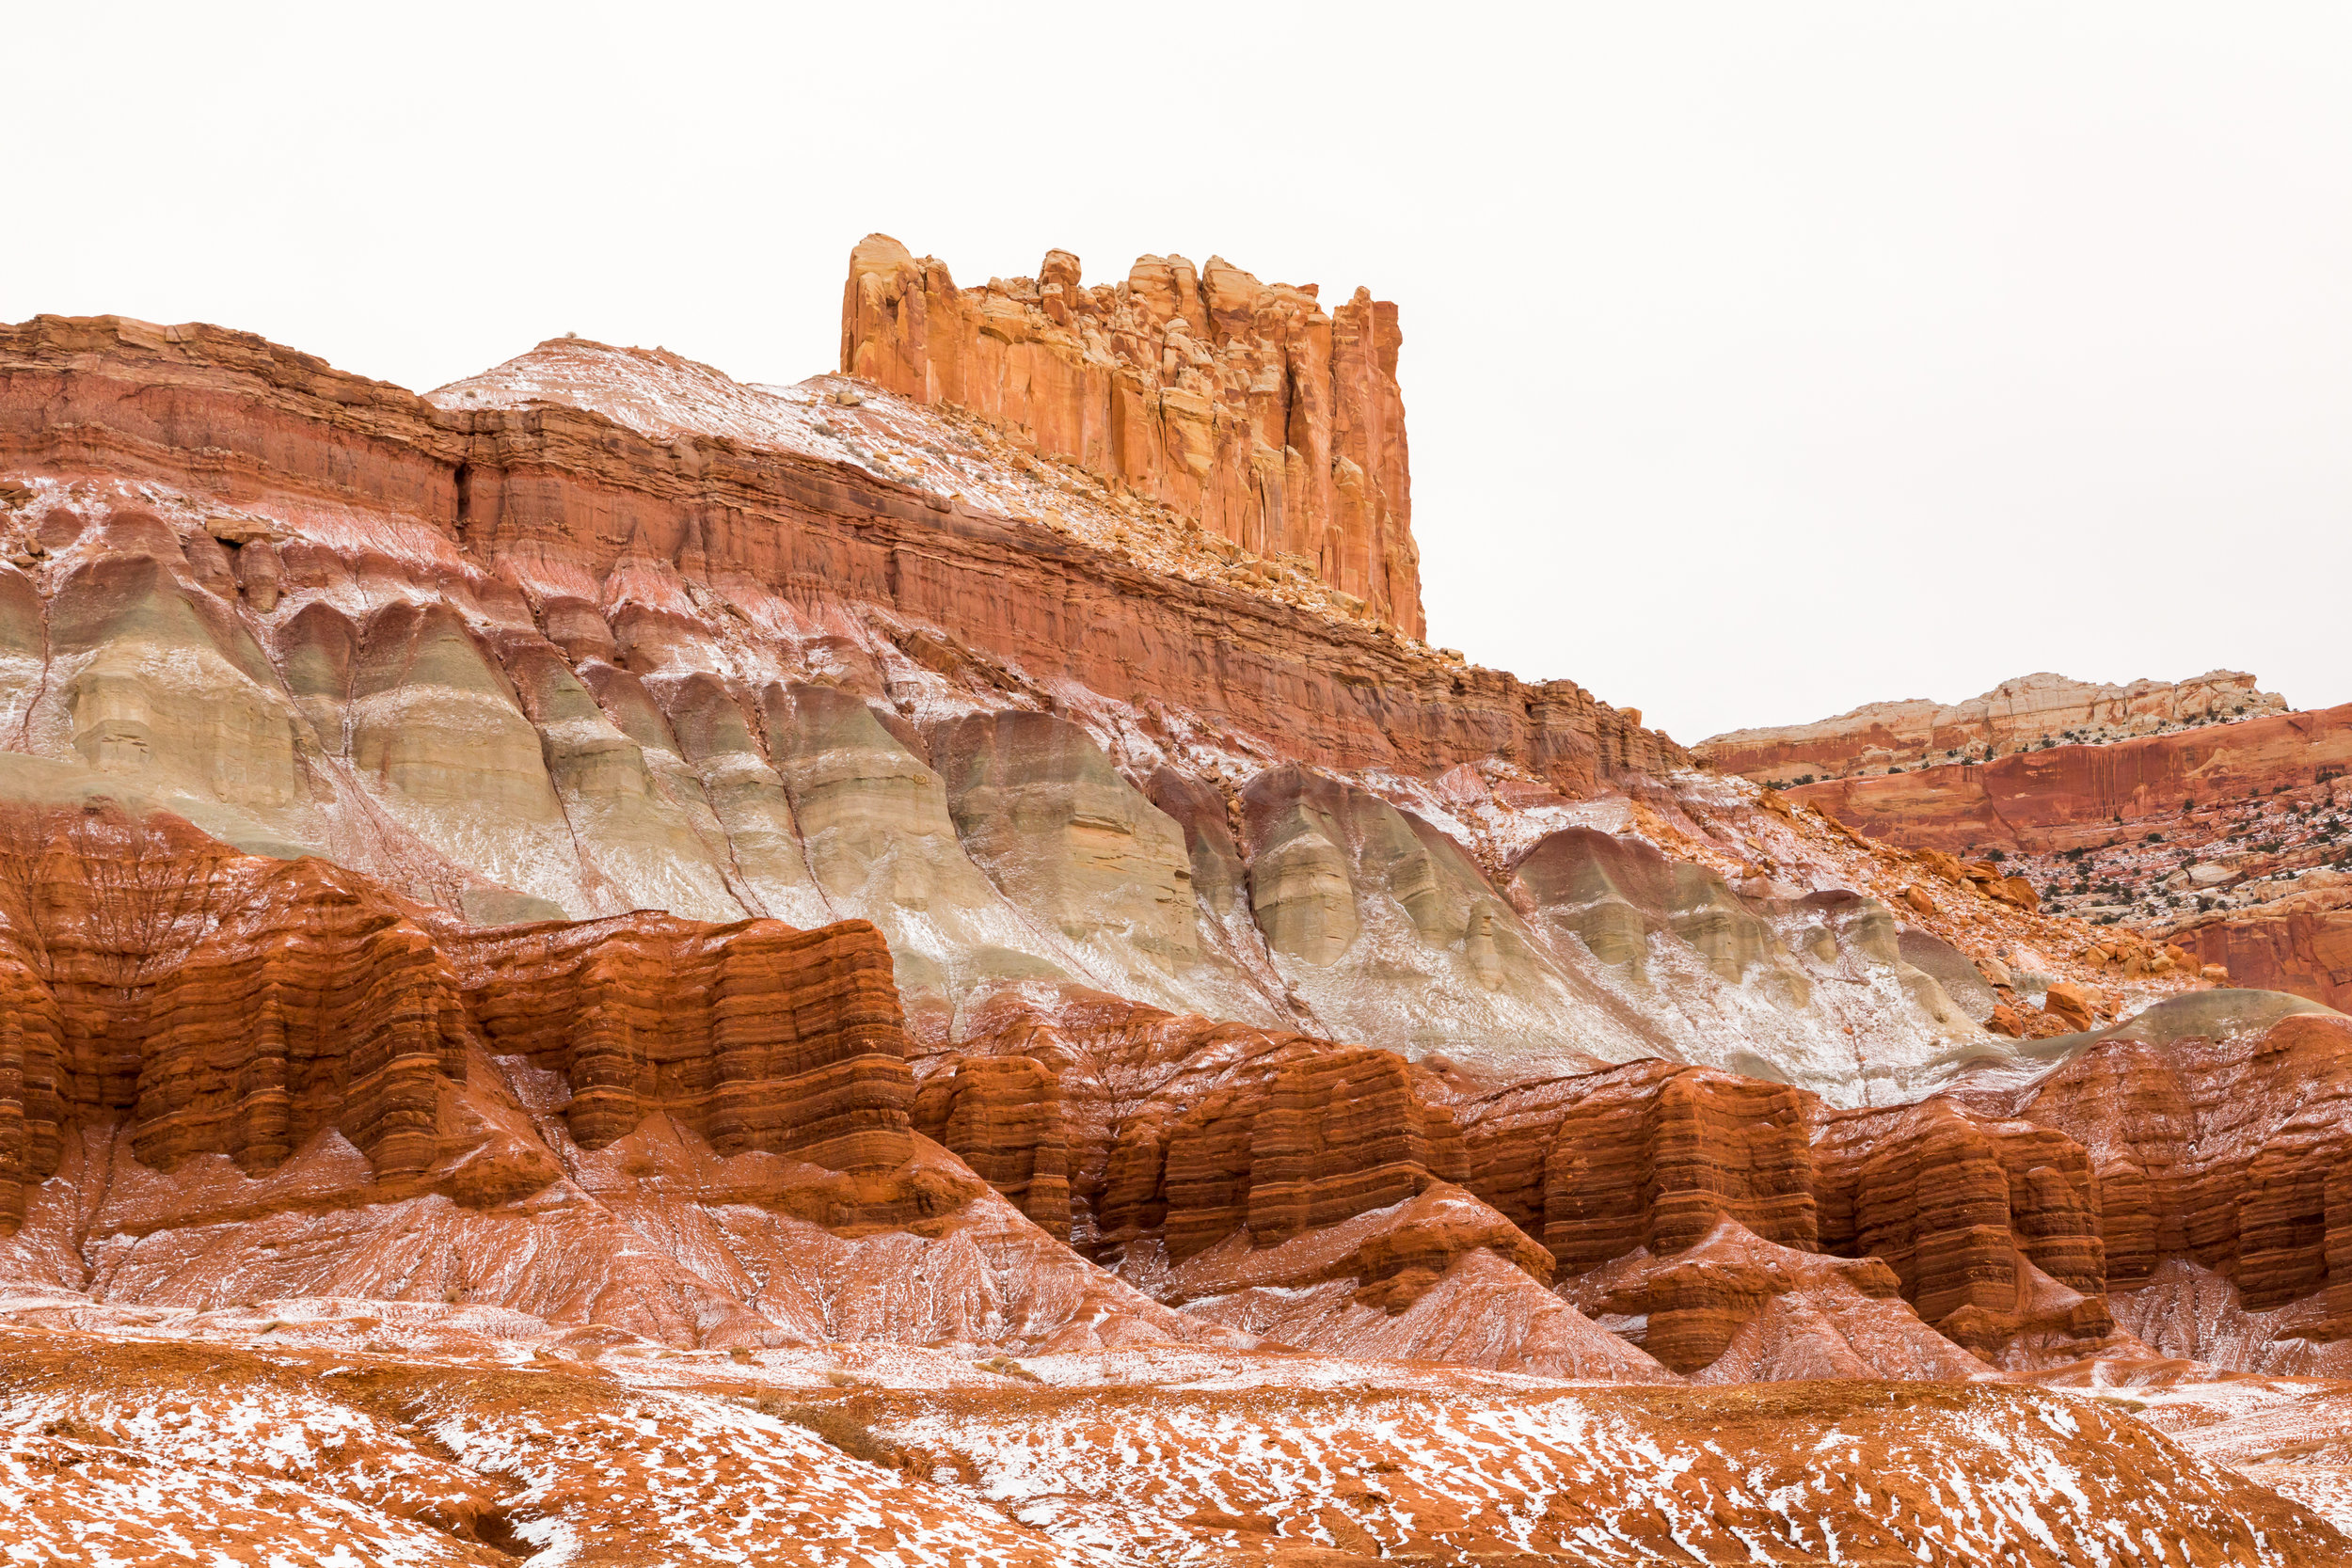 Capitol Reef National Park, Image # 2360